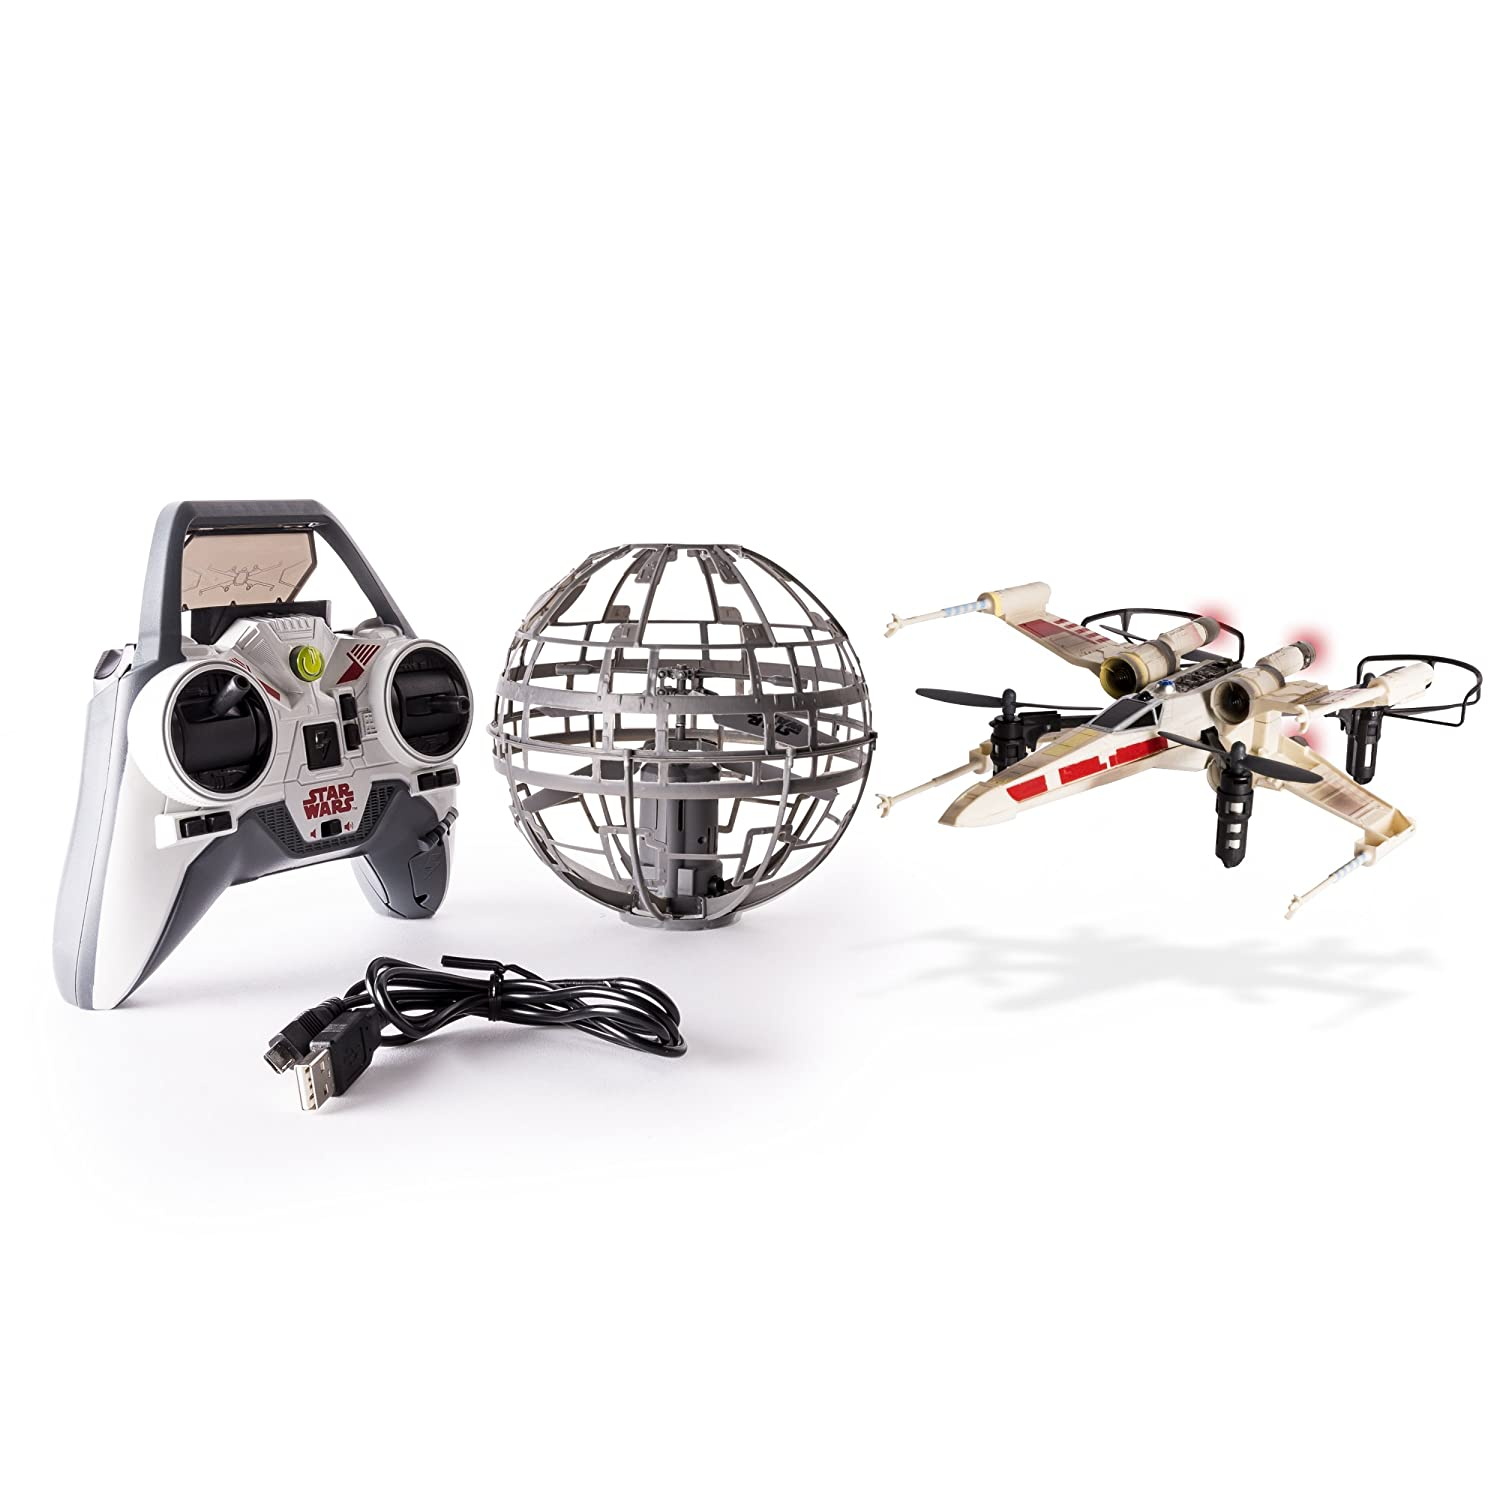 Star Wars Air Hogs X-Wing vs. Death Star Rebel Assault - RC Drones ...